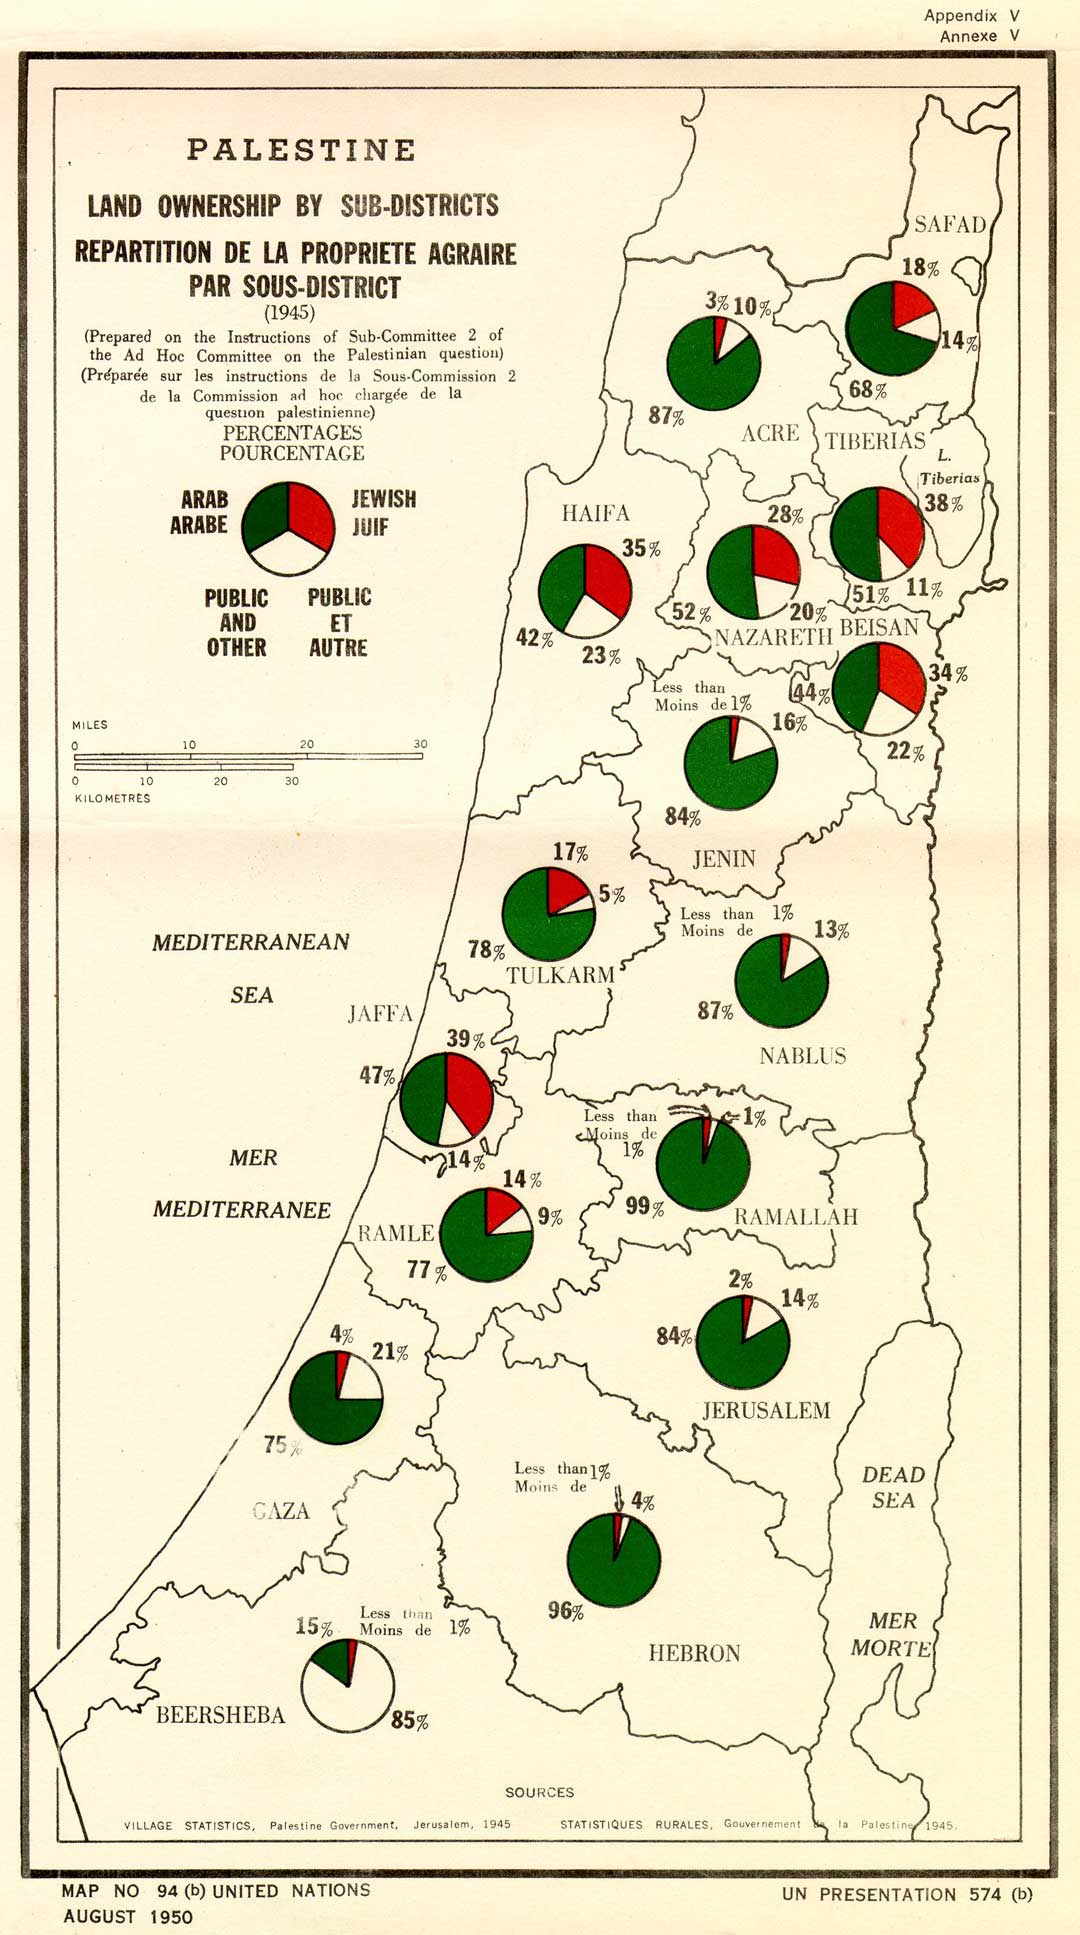 Map showing Palestine land ownership statistics from 1945, prepared by the UN Ad Hoc Committee on the Palestinian Question, a subcommittee of the UN Committee on Palestine (UNSCOP), which produced the infamous UN partition plan